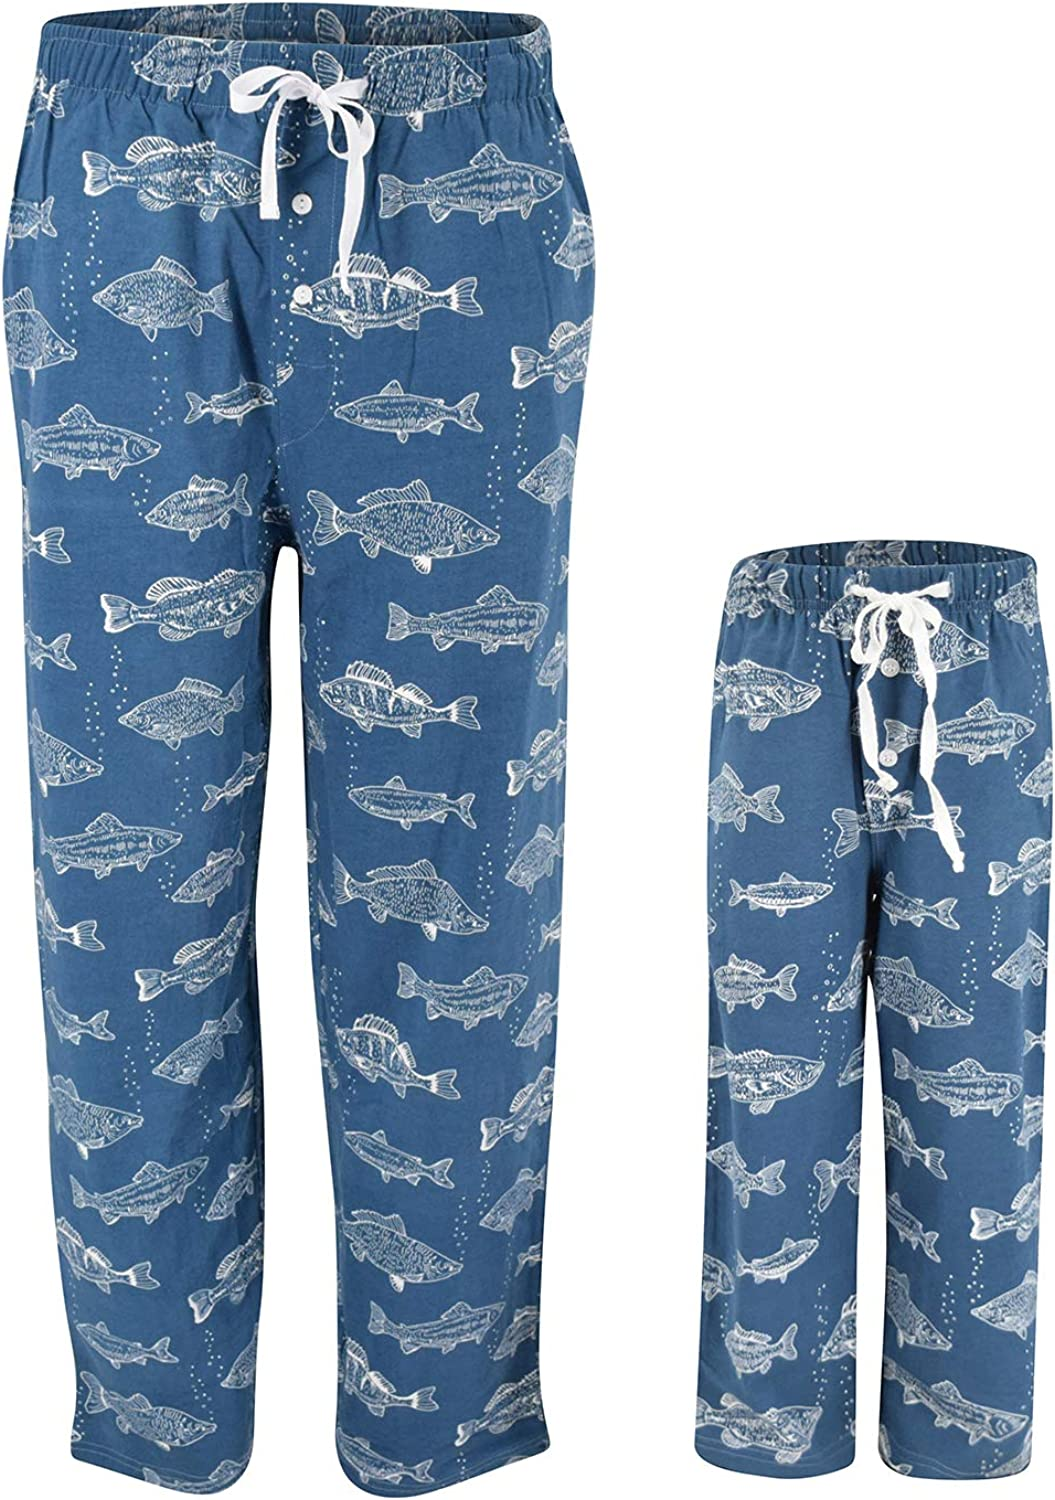 UB Fisherman Print Matching Family Father's Day Pajama Pants